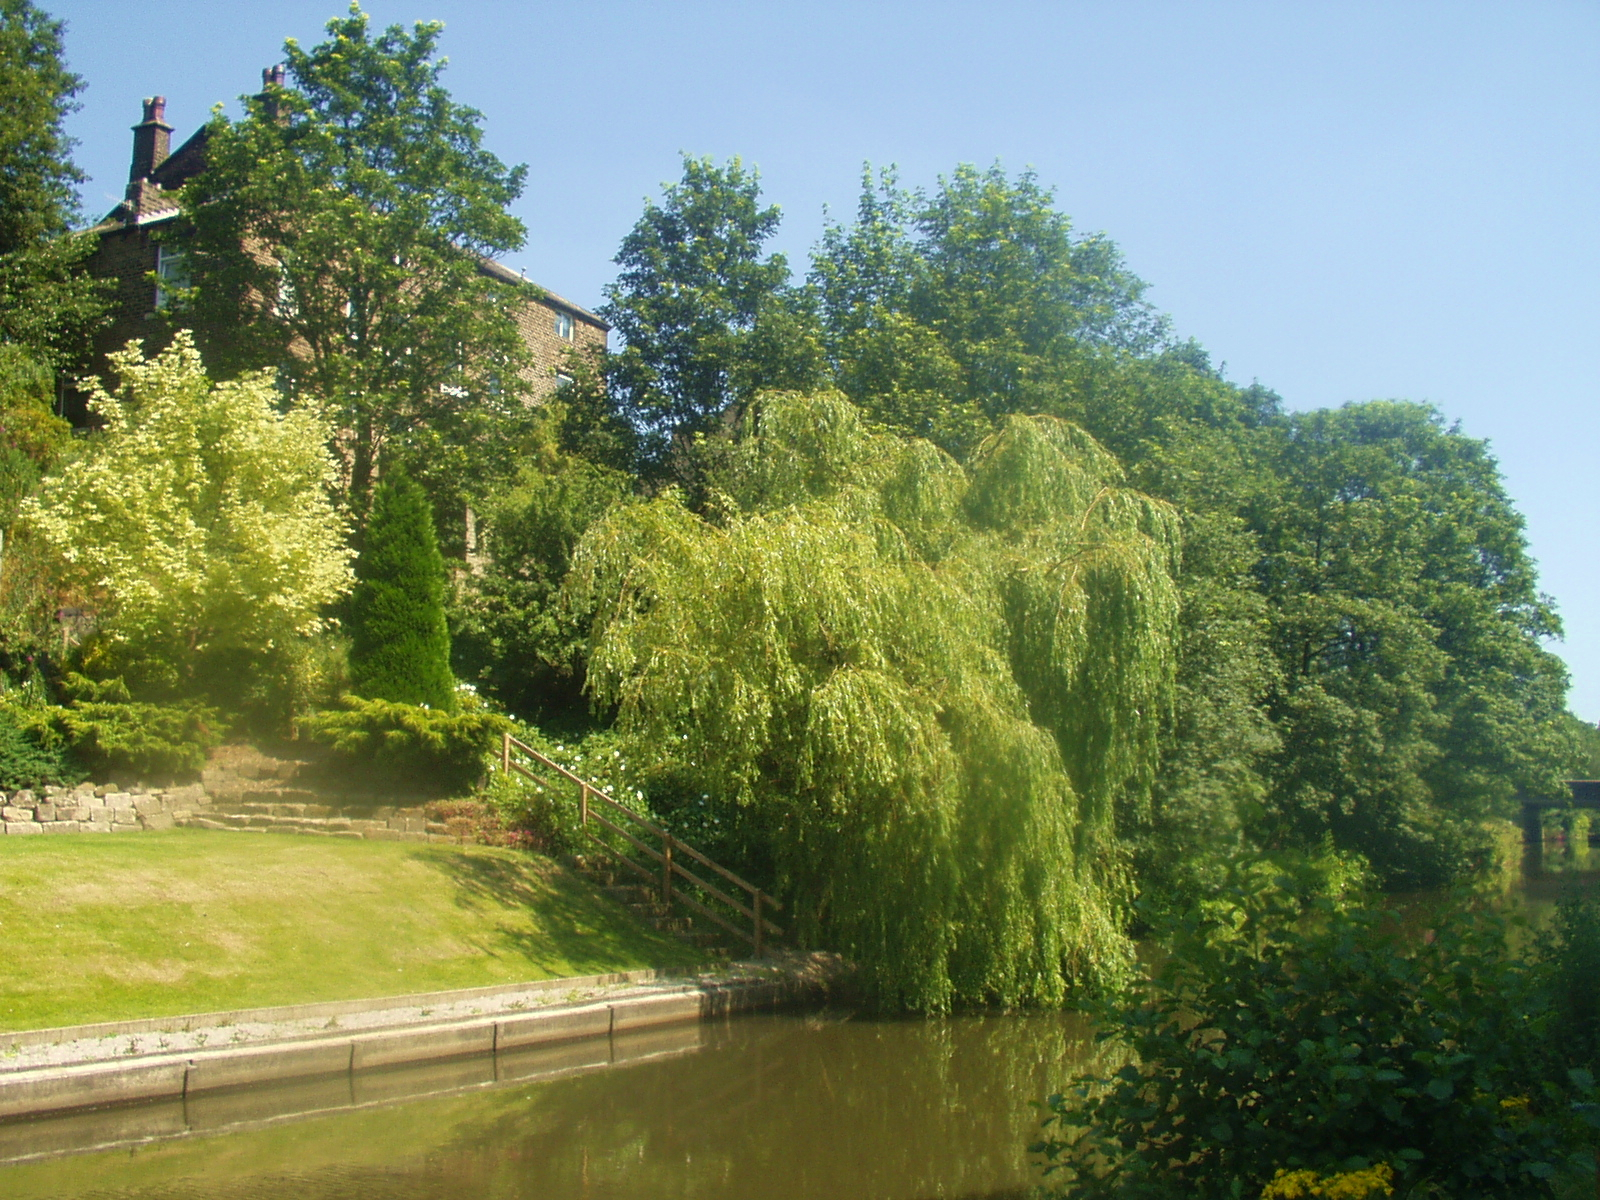 The willow tree by the Rochdale canal, near Hebden Bridge.